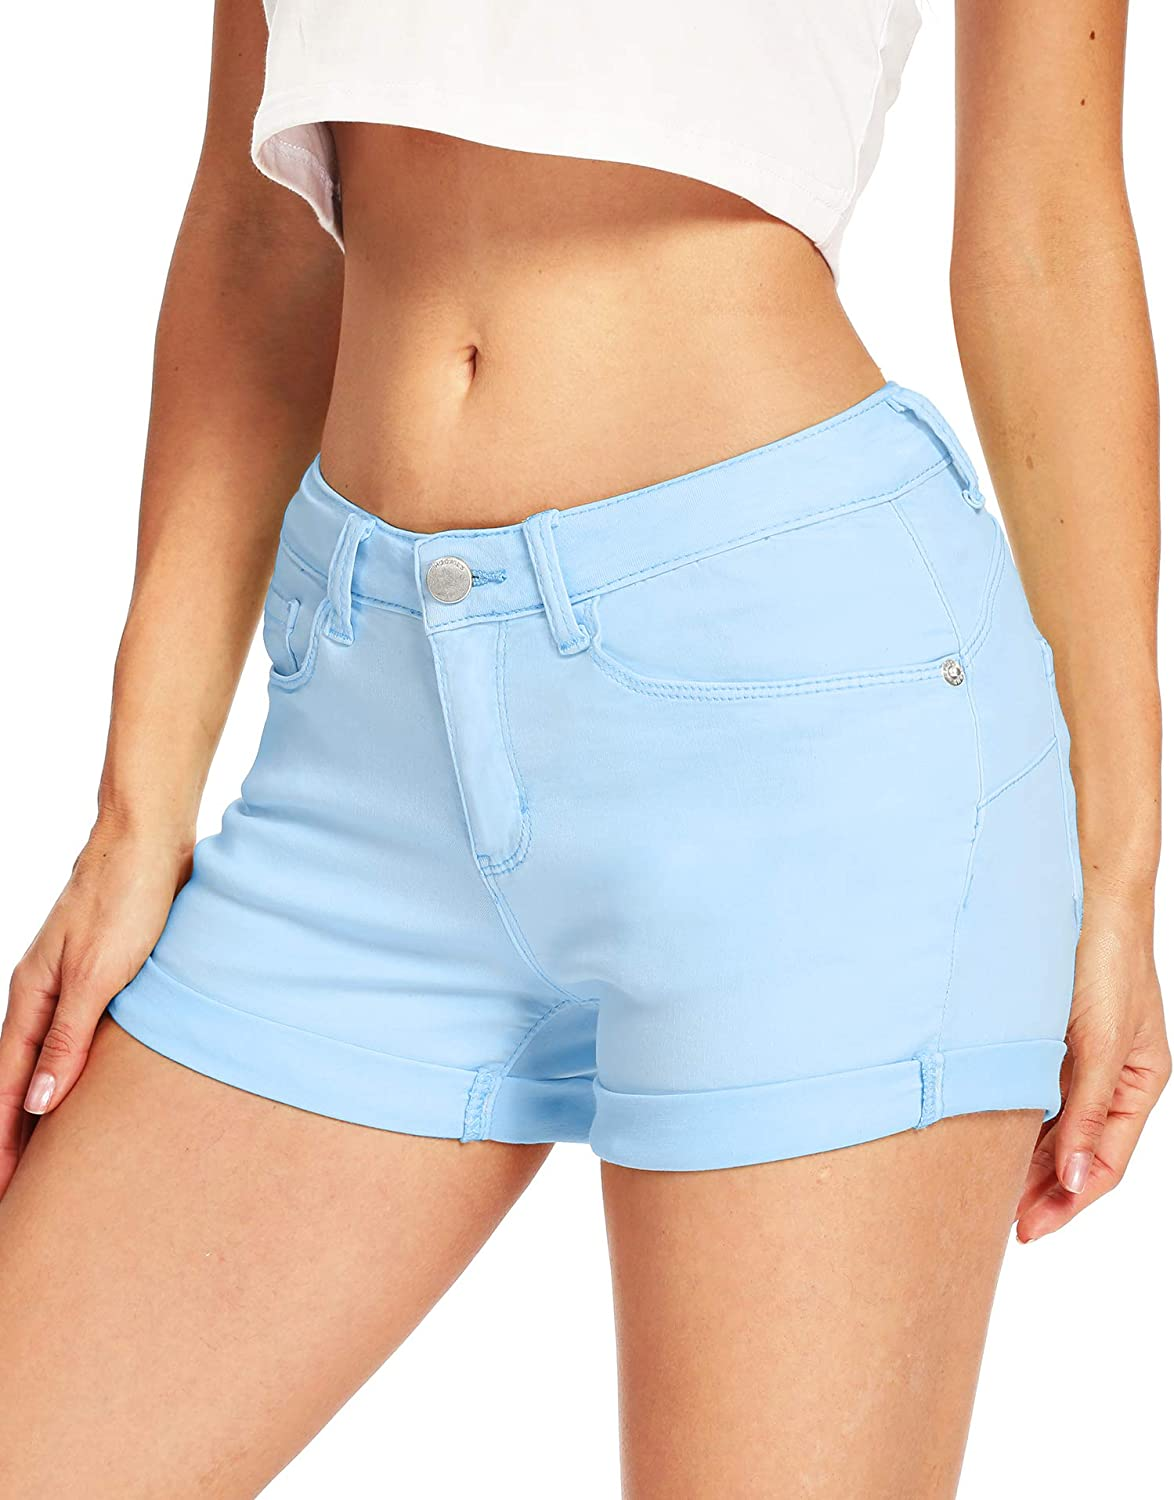 DYLISEA Women's High Waisted Shorts for Summer Sexy Stretchy Denim Casual Junior Shorts Jeans with Pockets